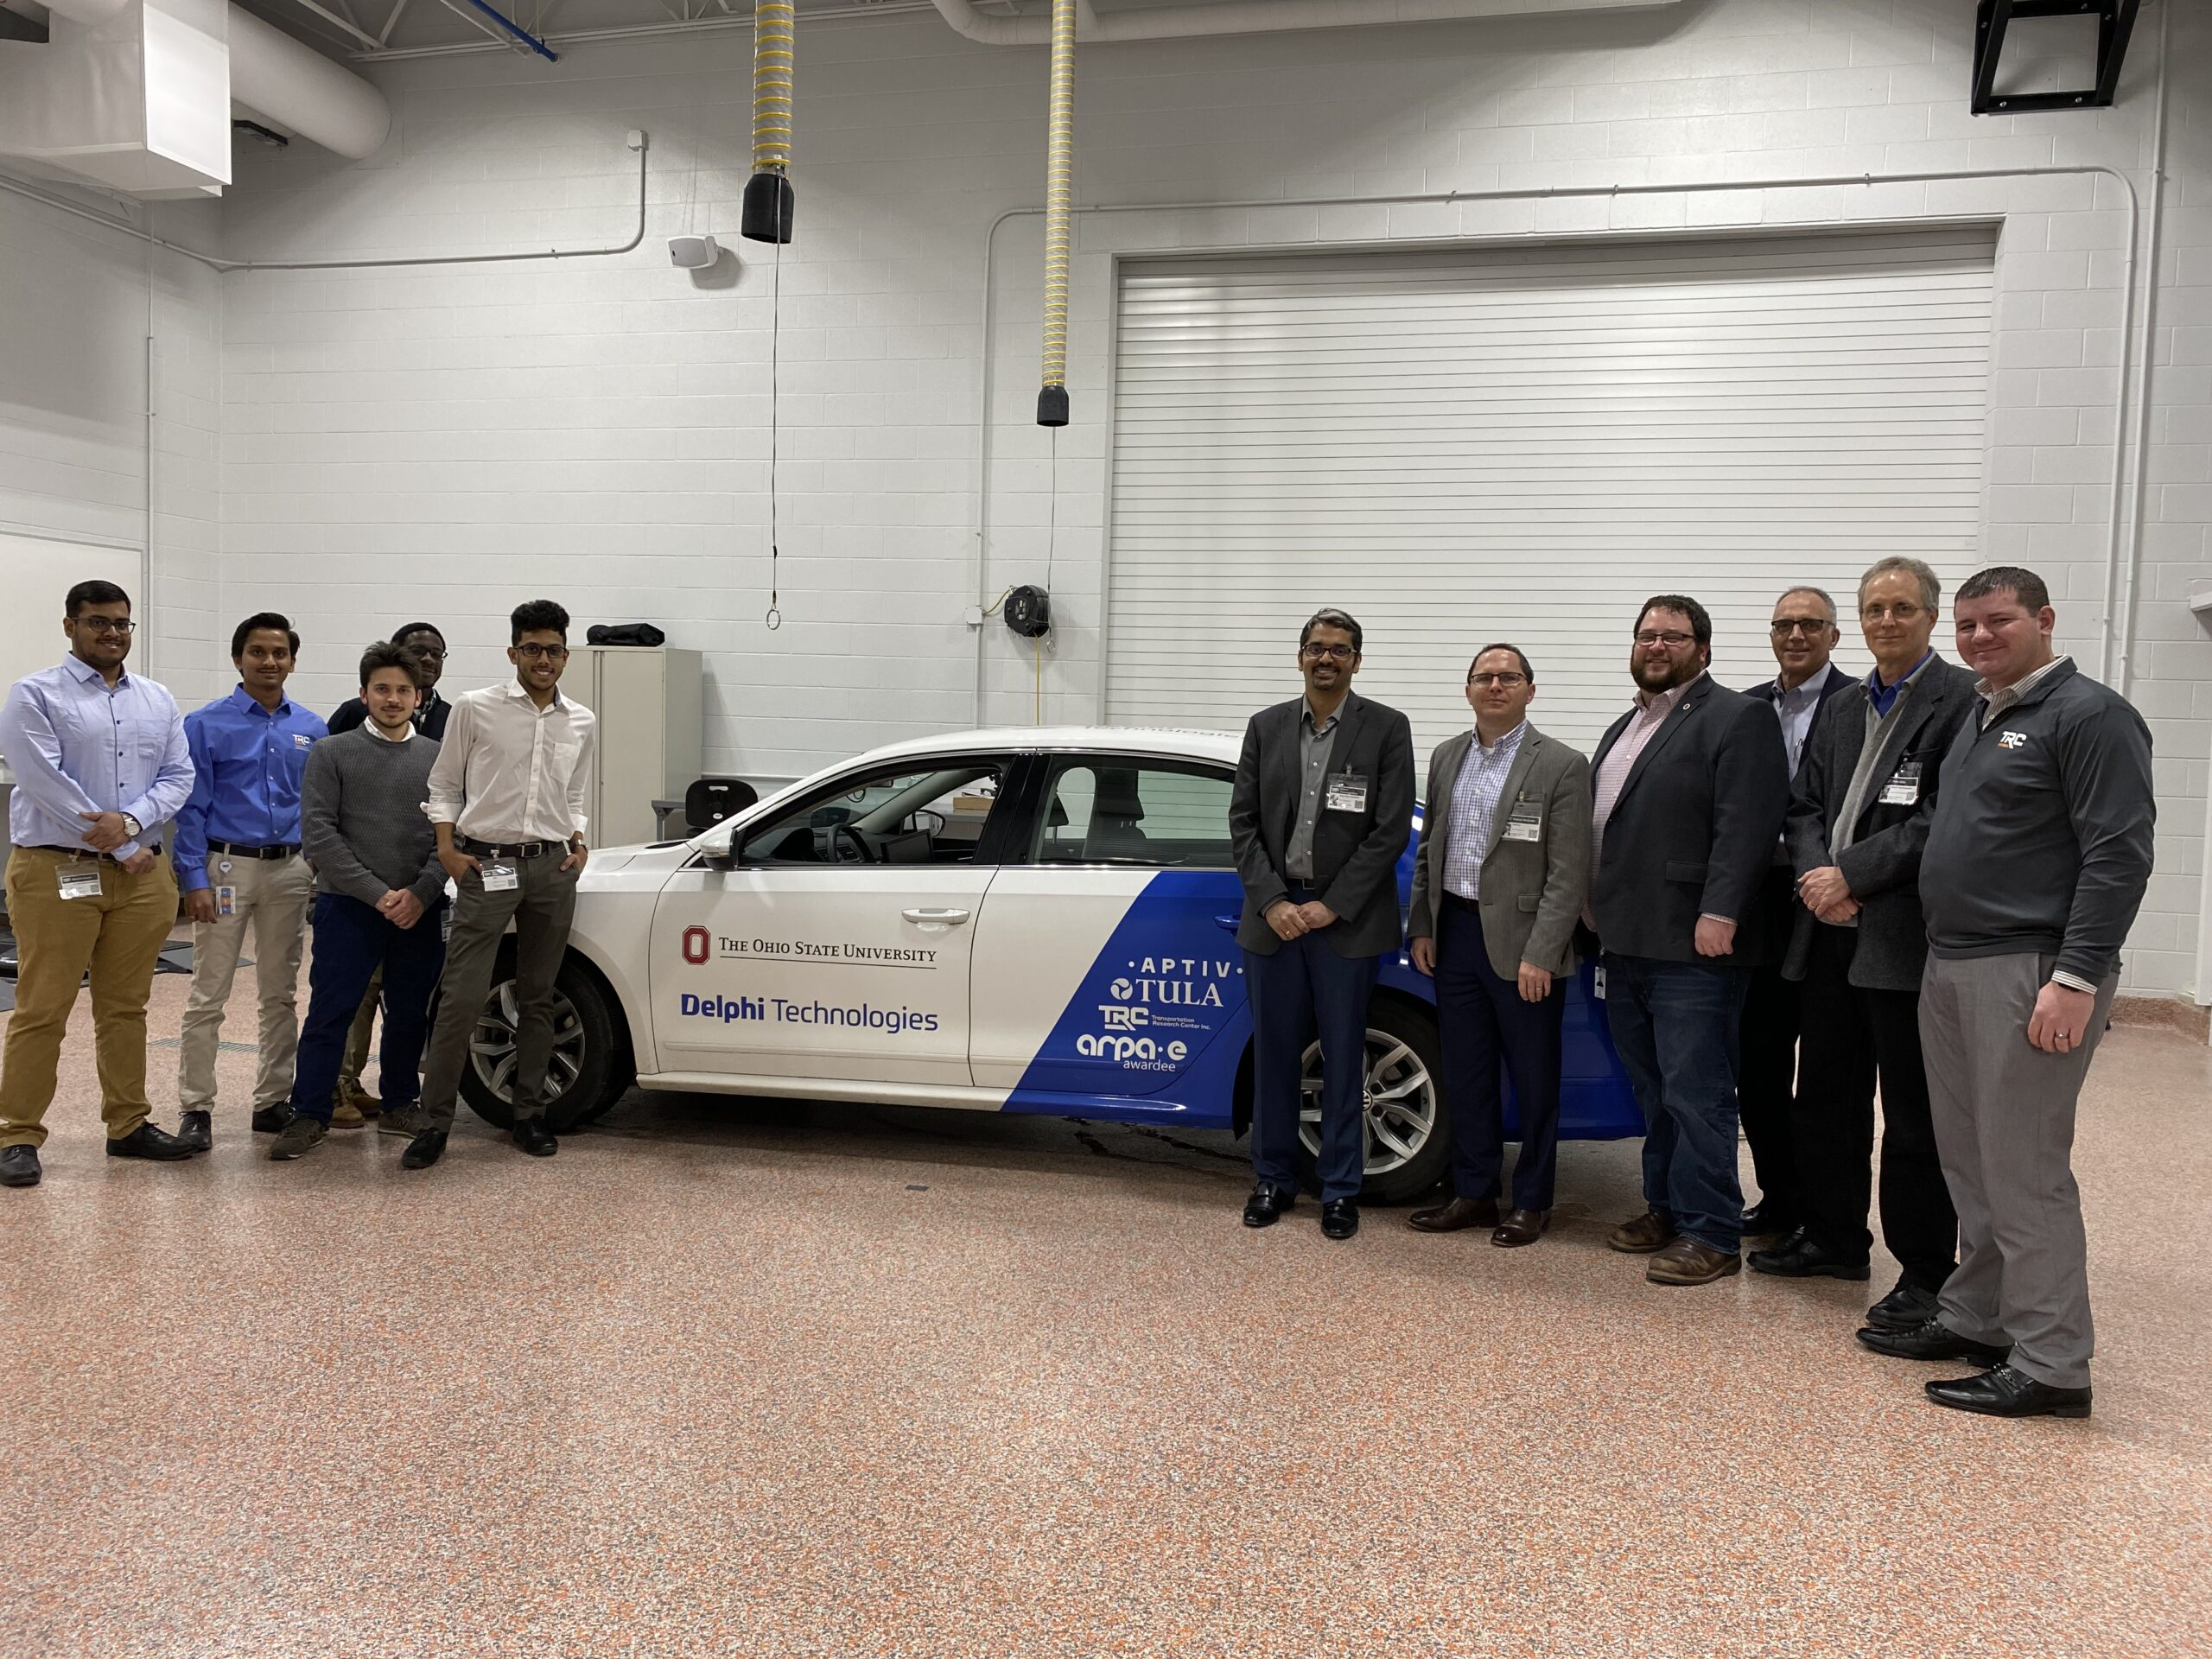 A group of Ohio State students and a group of ARPA-E representatives pose for a group photo with the Ohio NEXTCAR team's vehicle.